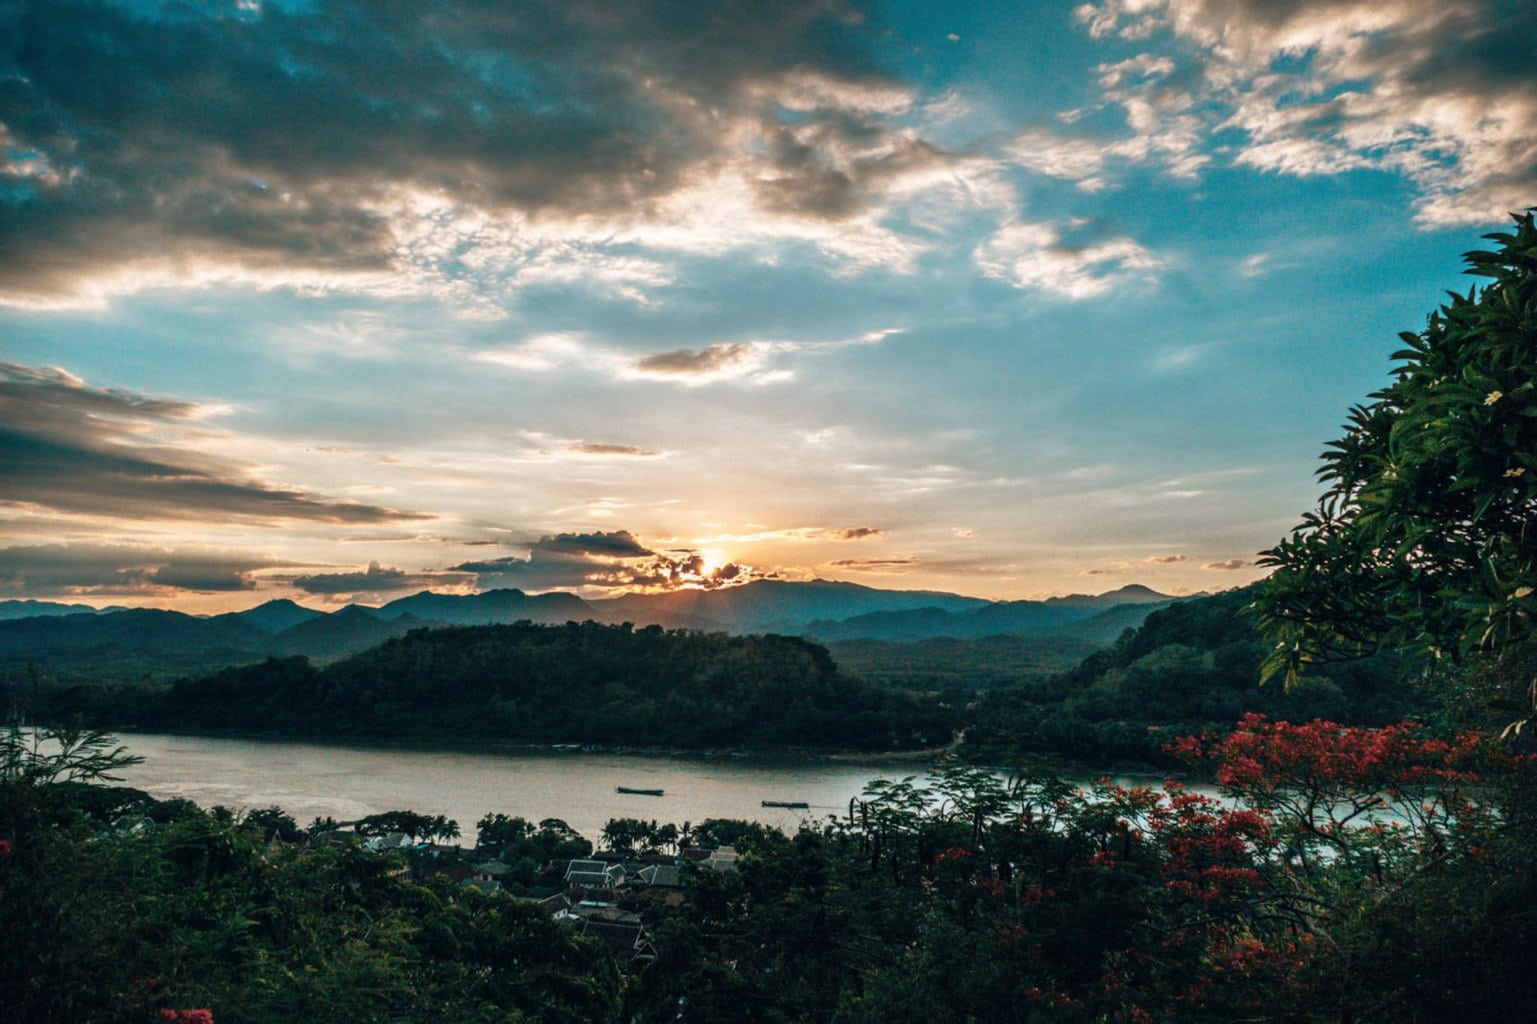 Sunset view from Chom Si temple Luang Prabang